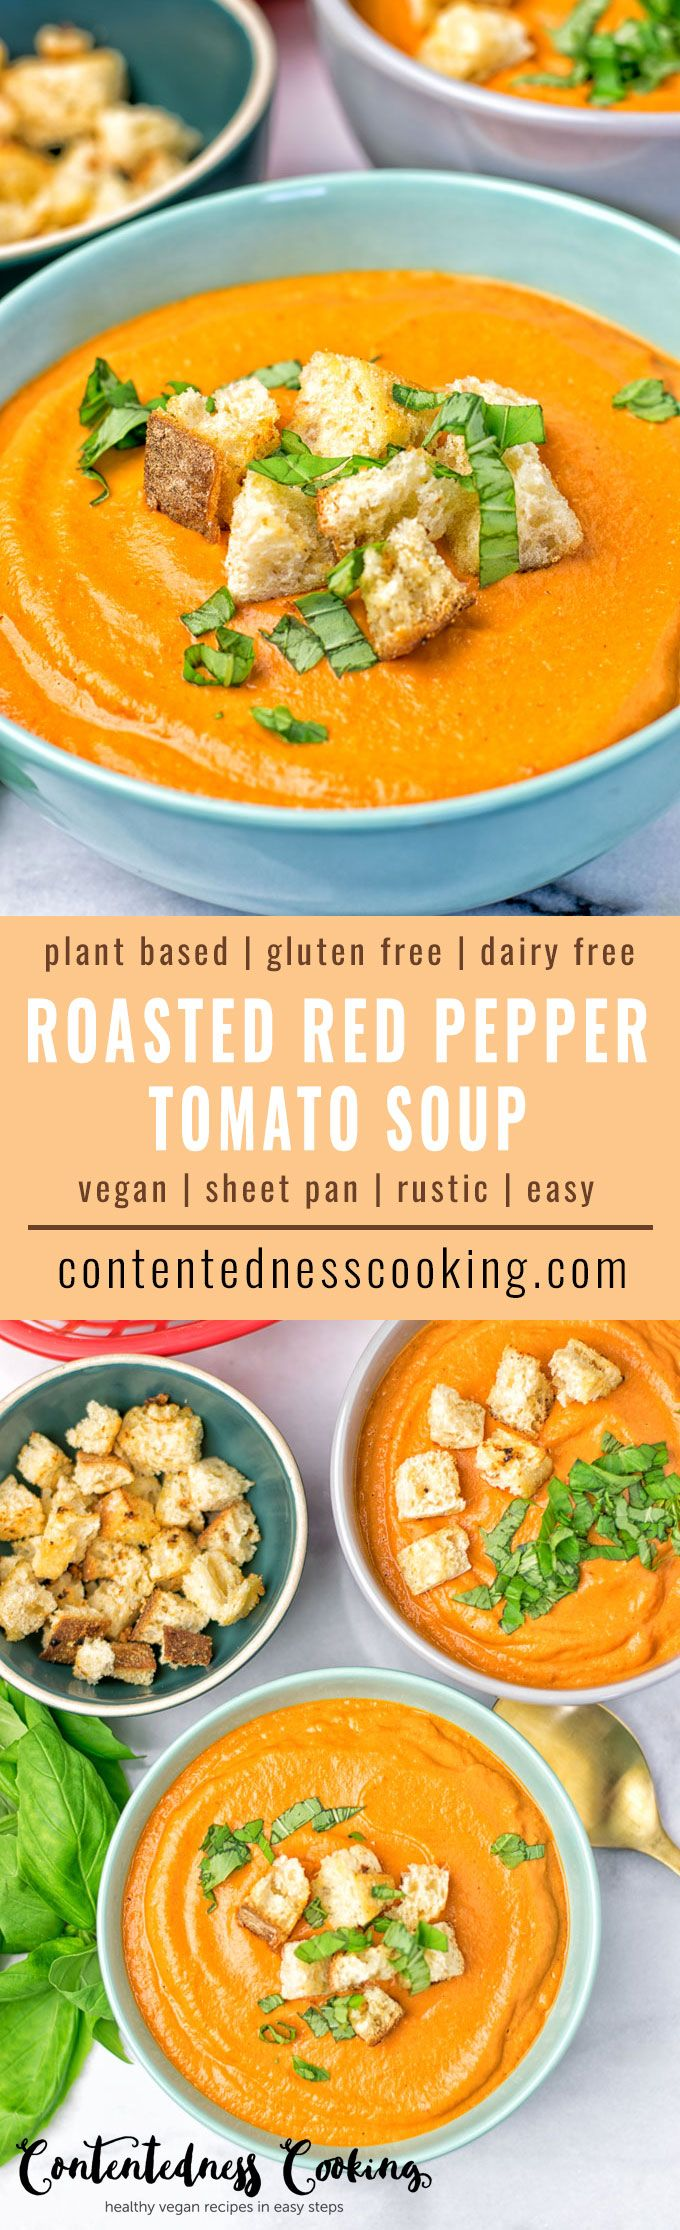 This Roasted Red Red Pepper Tomato Soup is vegan, gluten free and the only recipe you ever need. It's made on a sheet pan and is an amazing dairy free alternative. Makes an insanely delicious appetizer, lunch or dinner. One bite will make you crave for more in no time! #vegan #glutenfree #dairyfree #plantbased